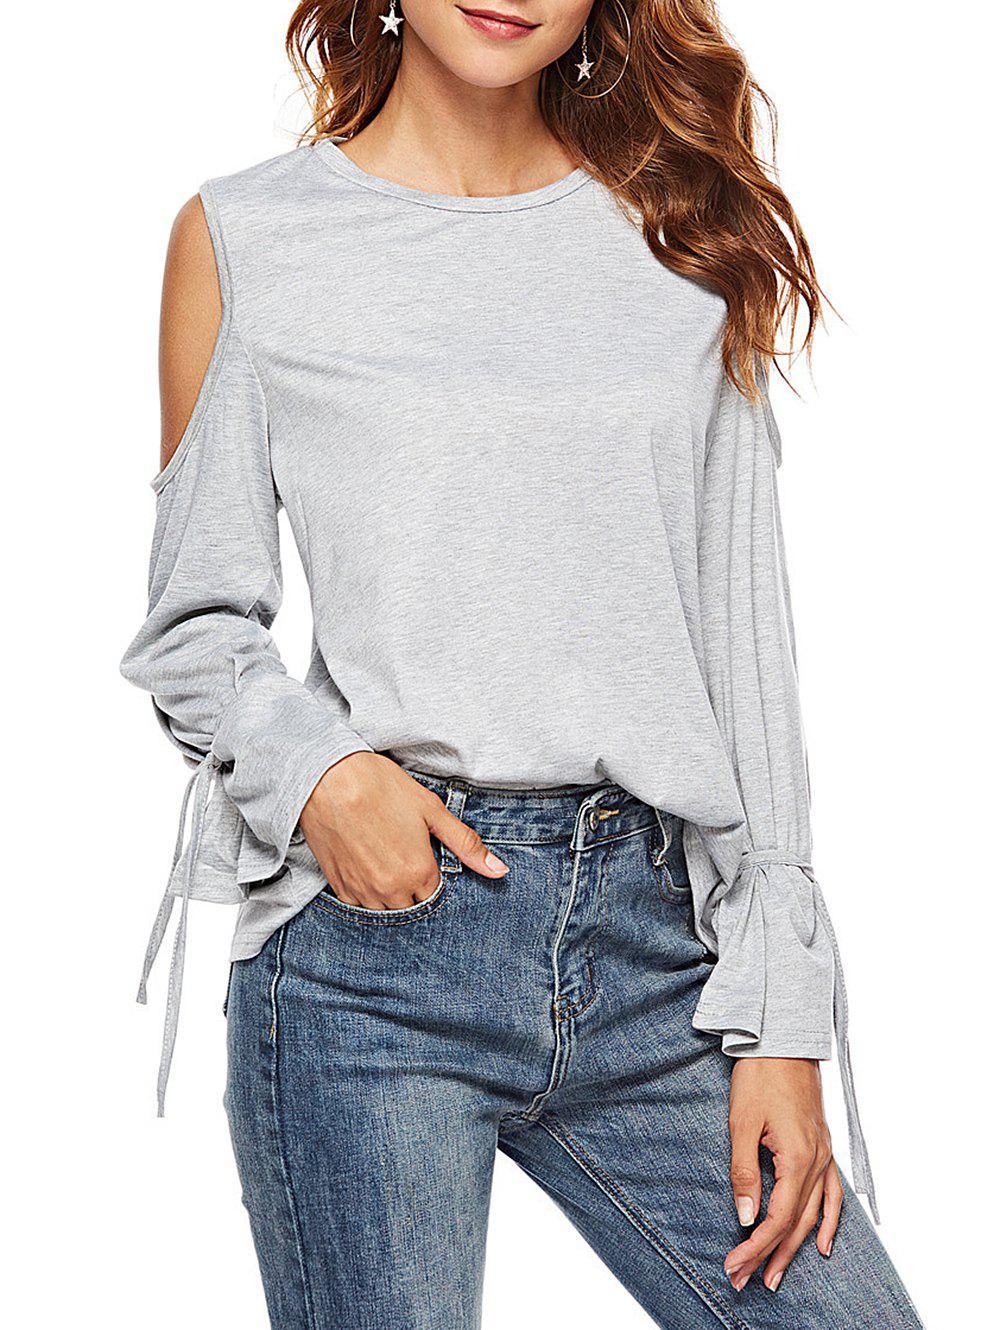 a75d3eb87895e 2019 Open Shoulder Bell Sleeve T-shirt